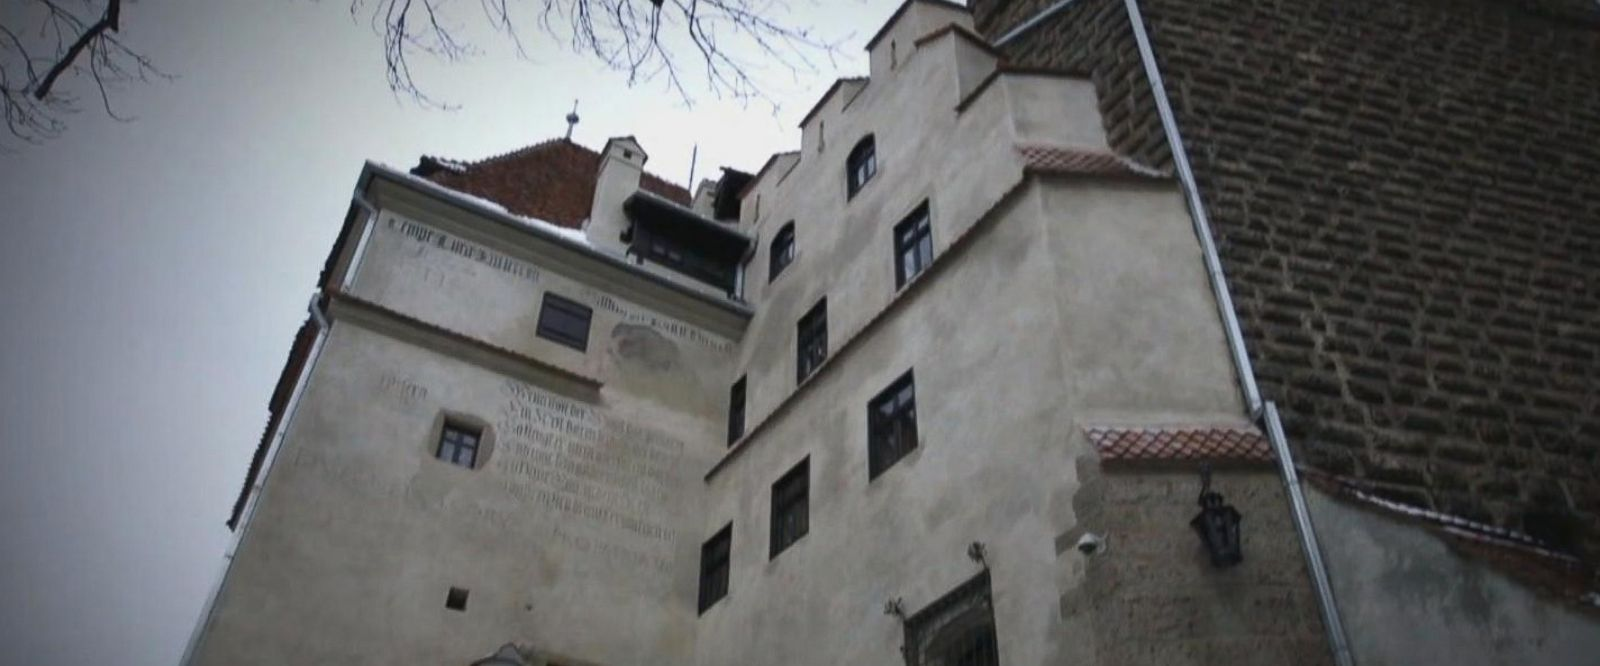 VIDEO: Inside the real-life Dracula's castle in Romania